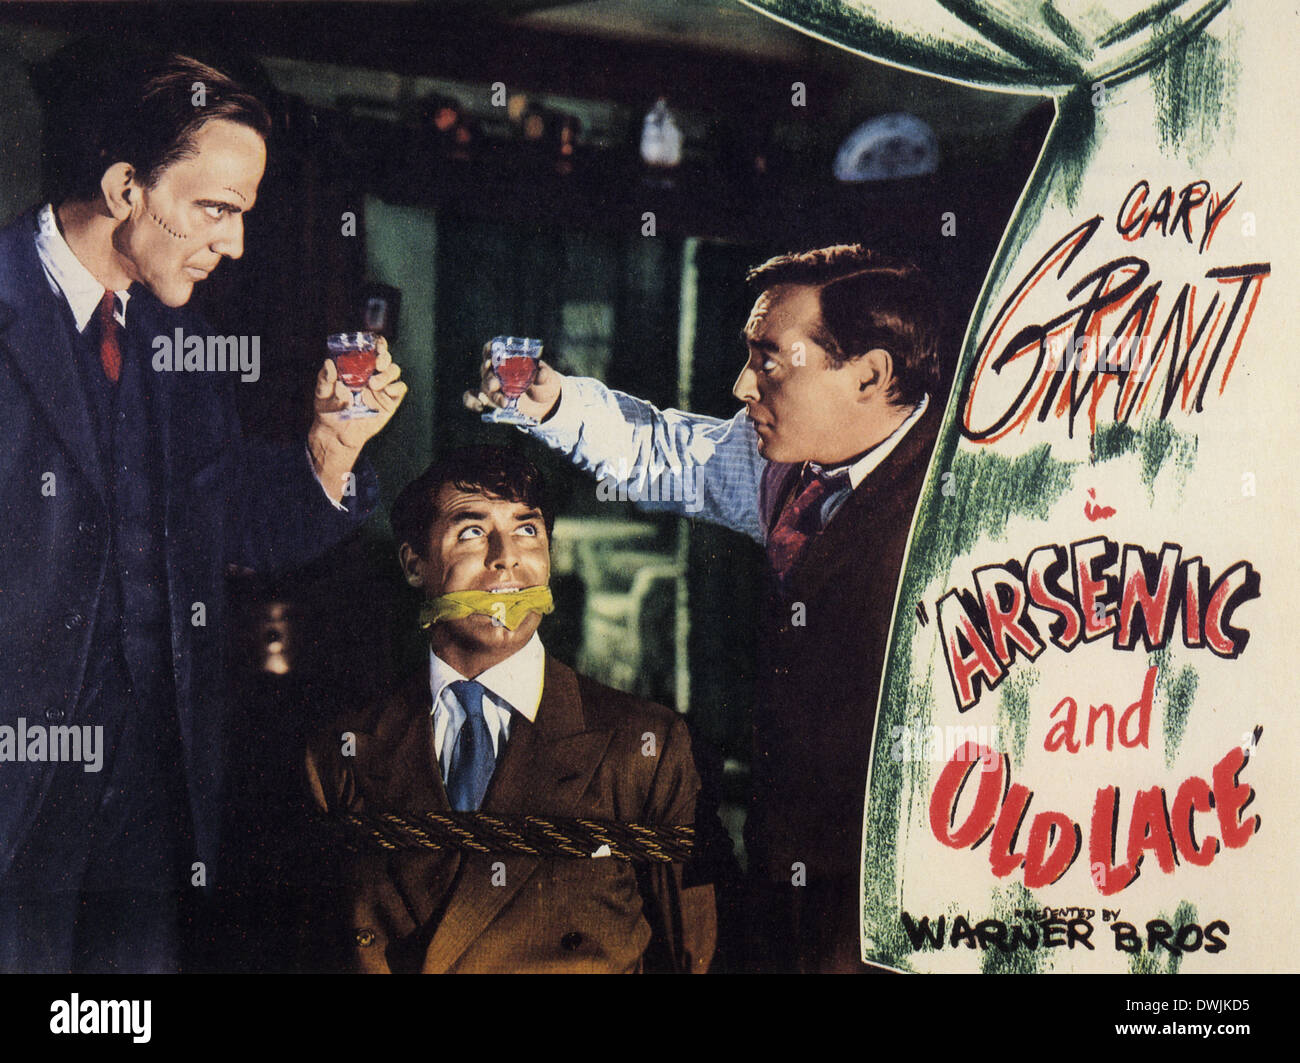 ARSENIC AND OLD LACE 1944 Warner Bros film From left: Edward Horton,Cary Grant , Peter Lorre - Stock Image